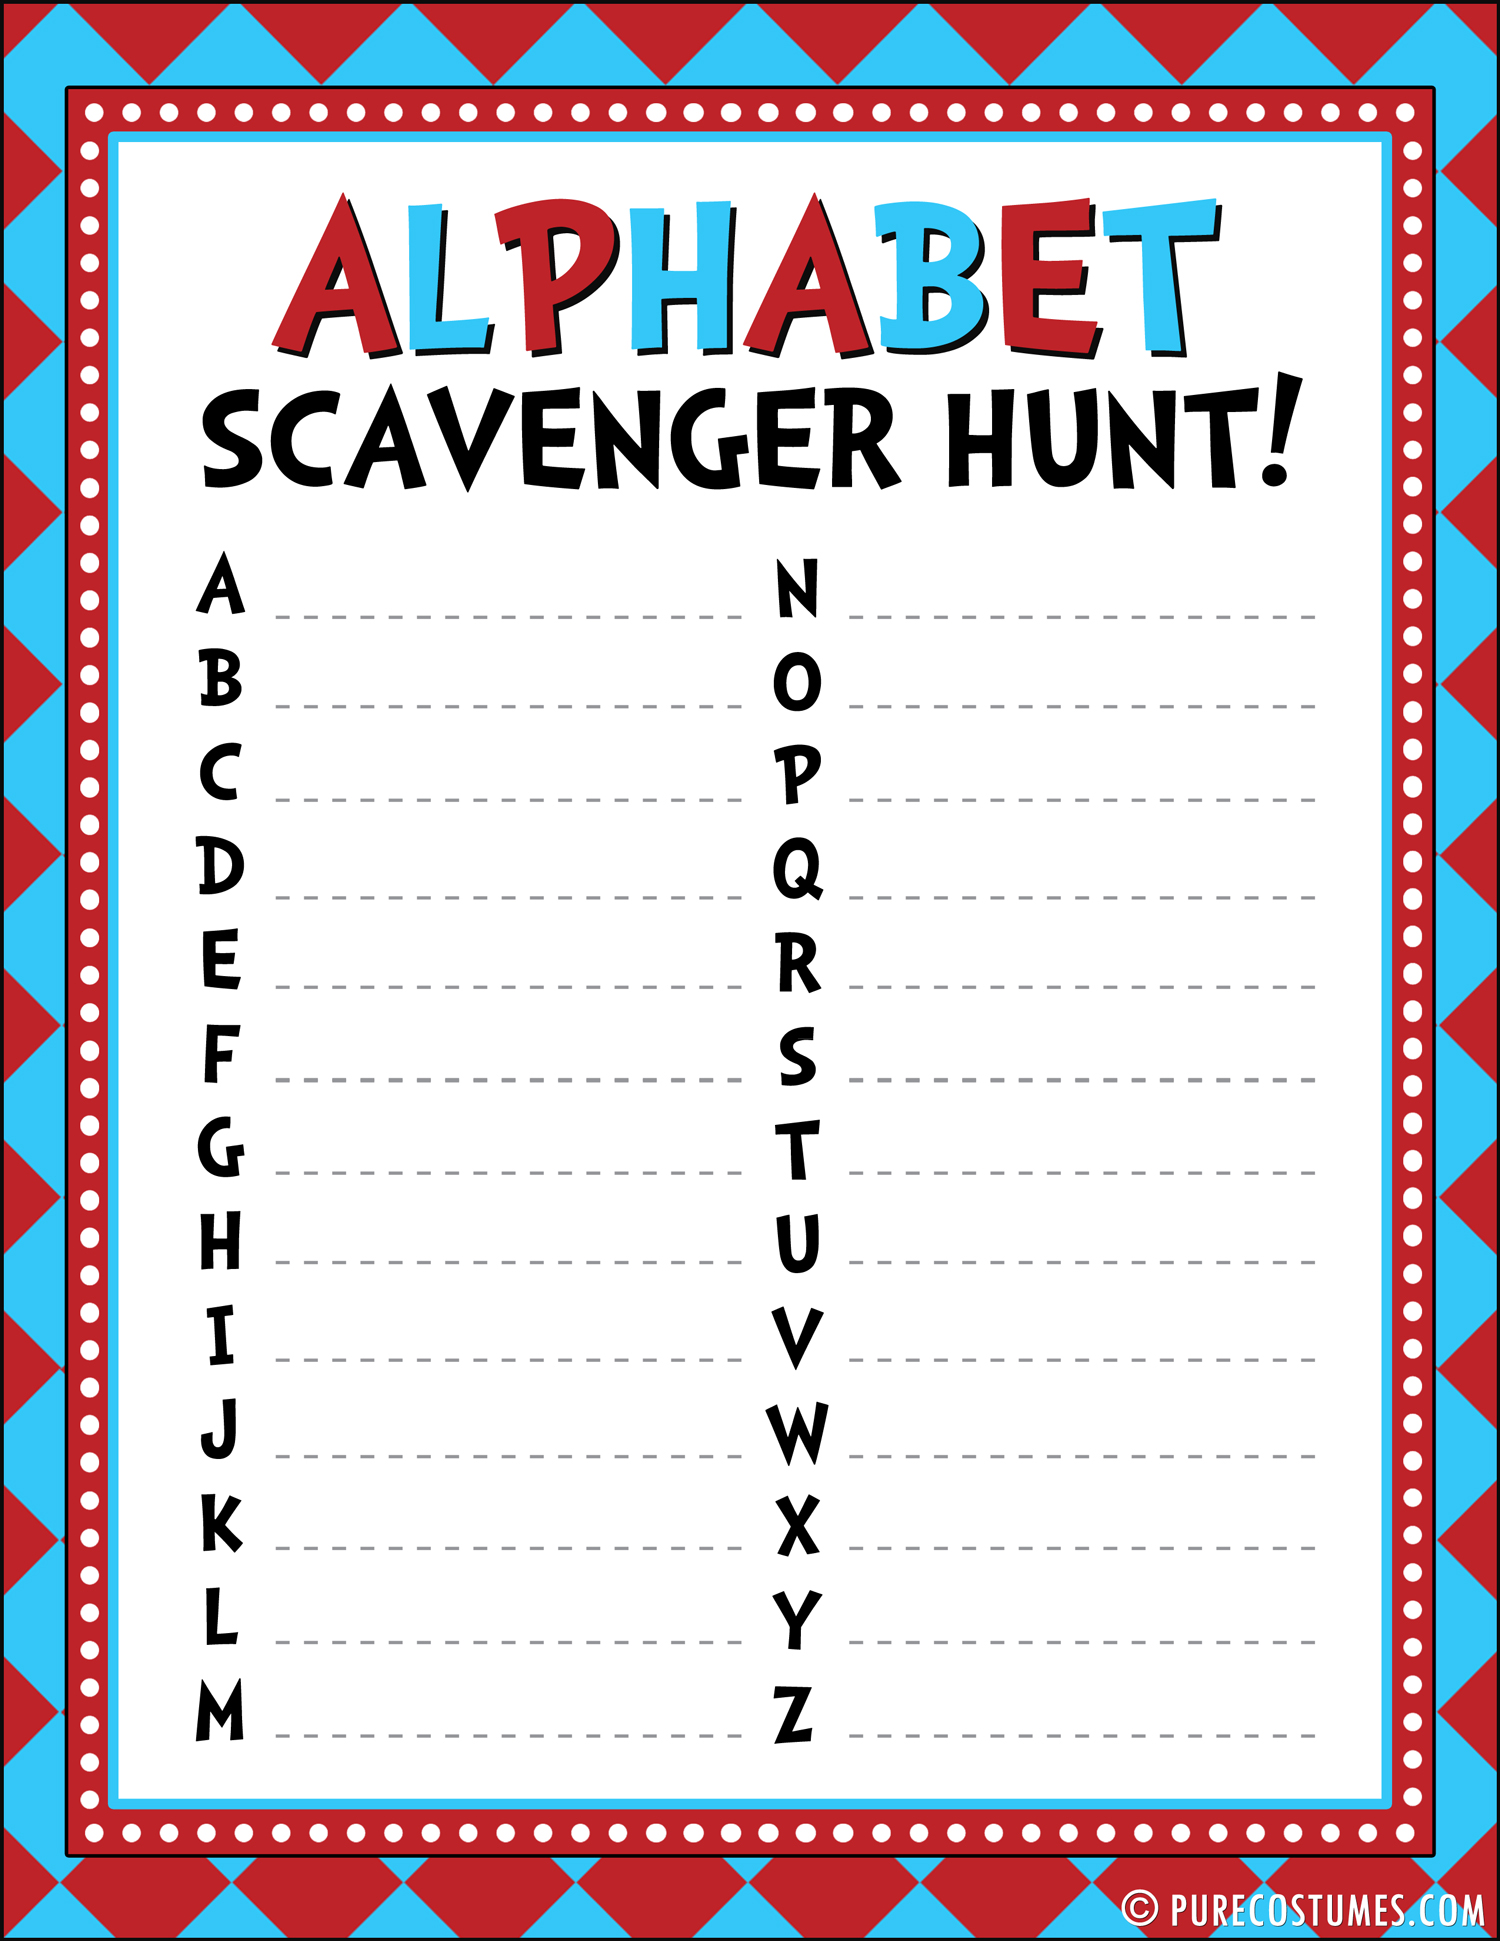 Scavenger Hunt Worksheet Letter K